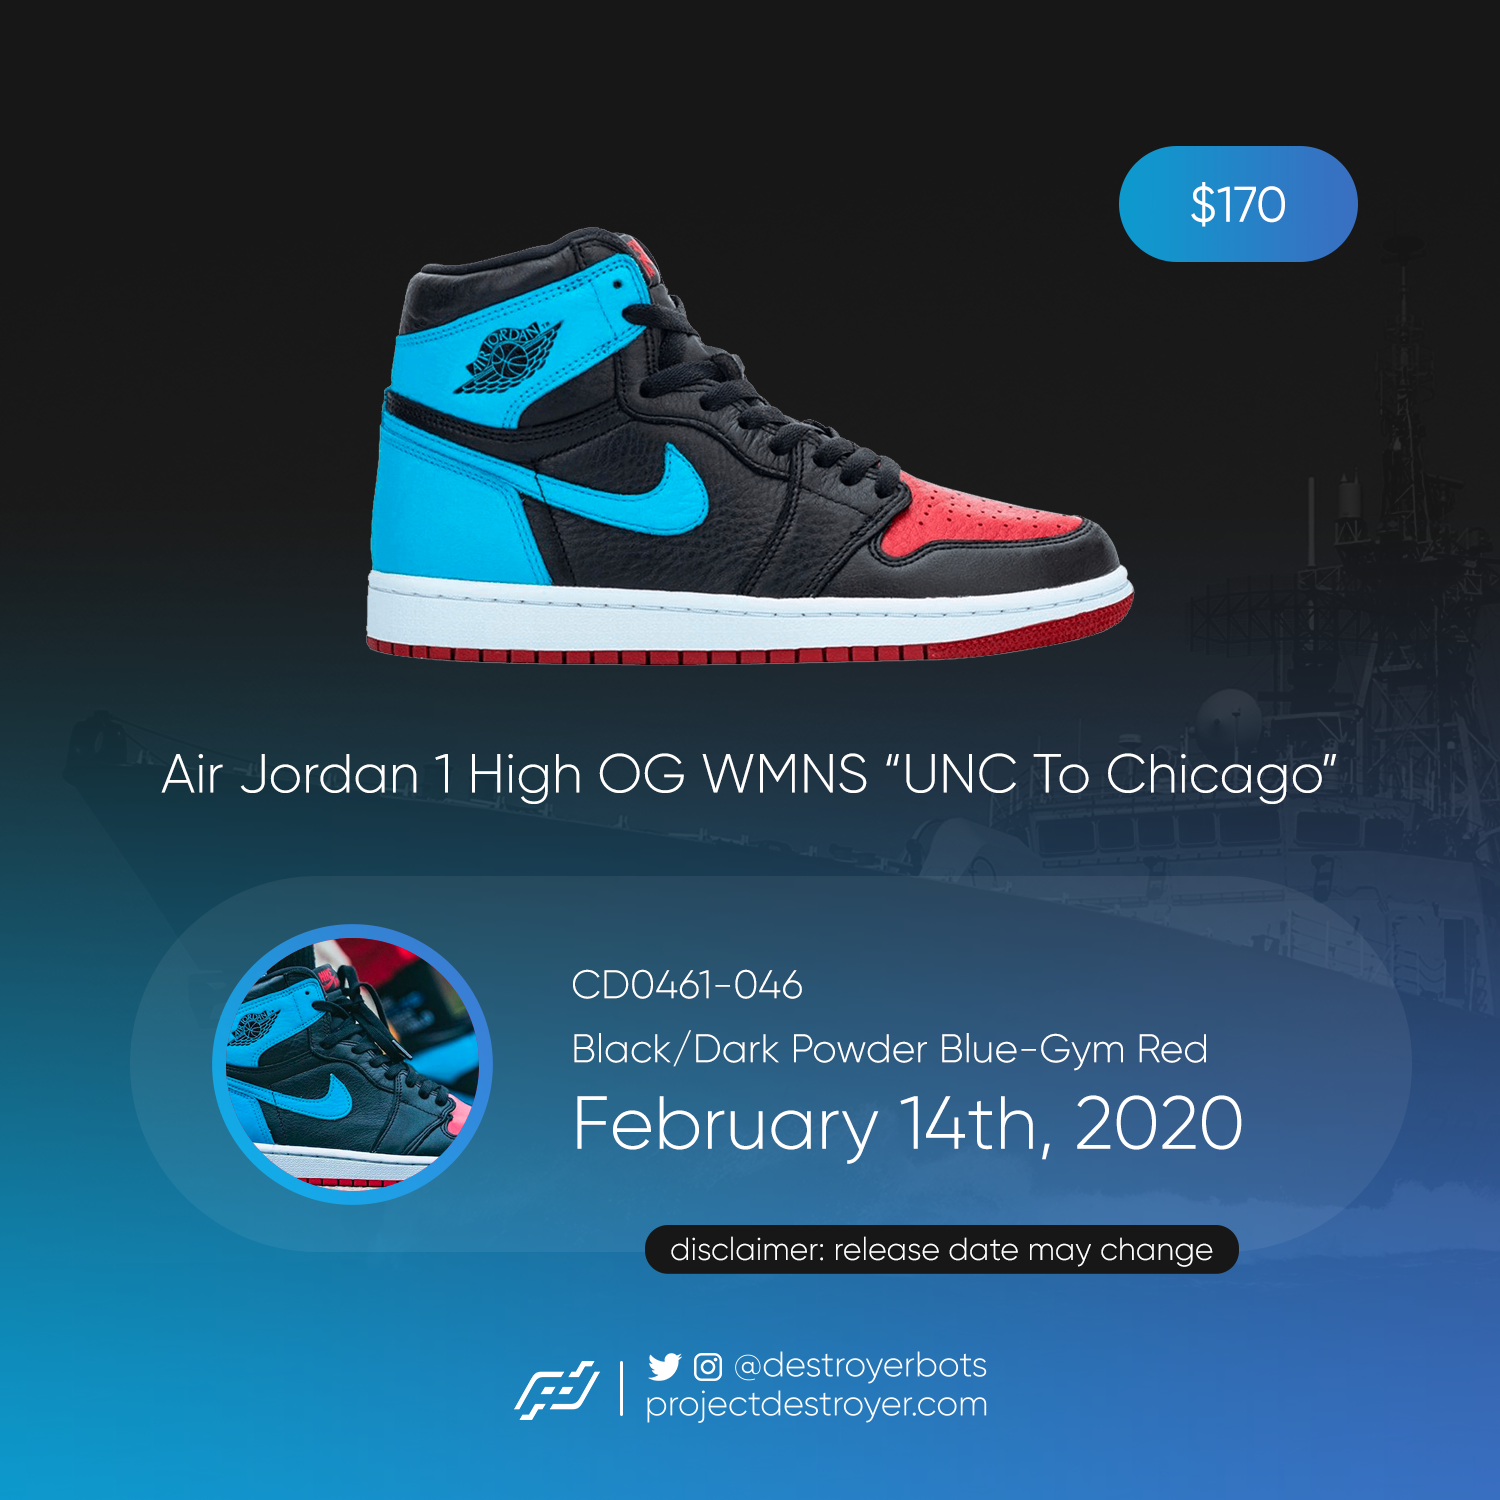 Air Jordan 1 UNC Chicago WMNS - Project Destroyer